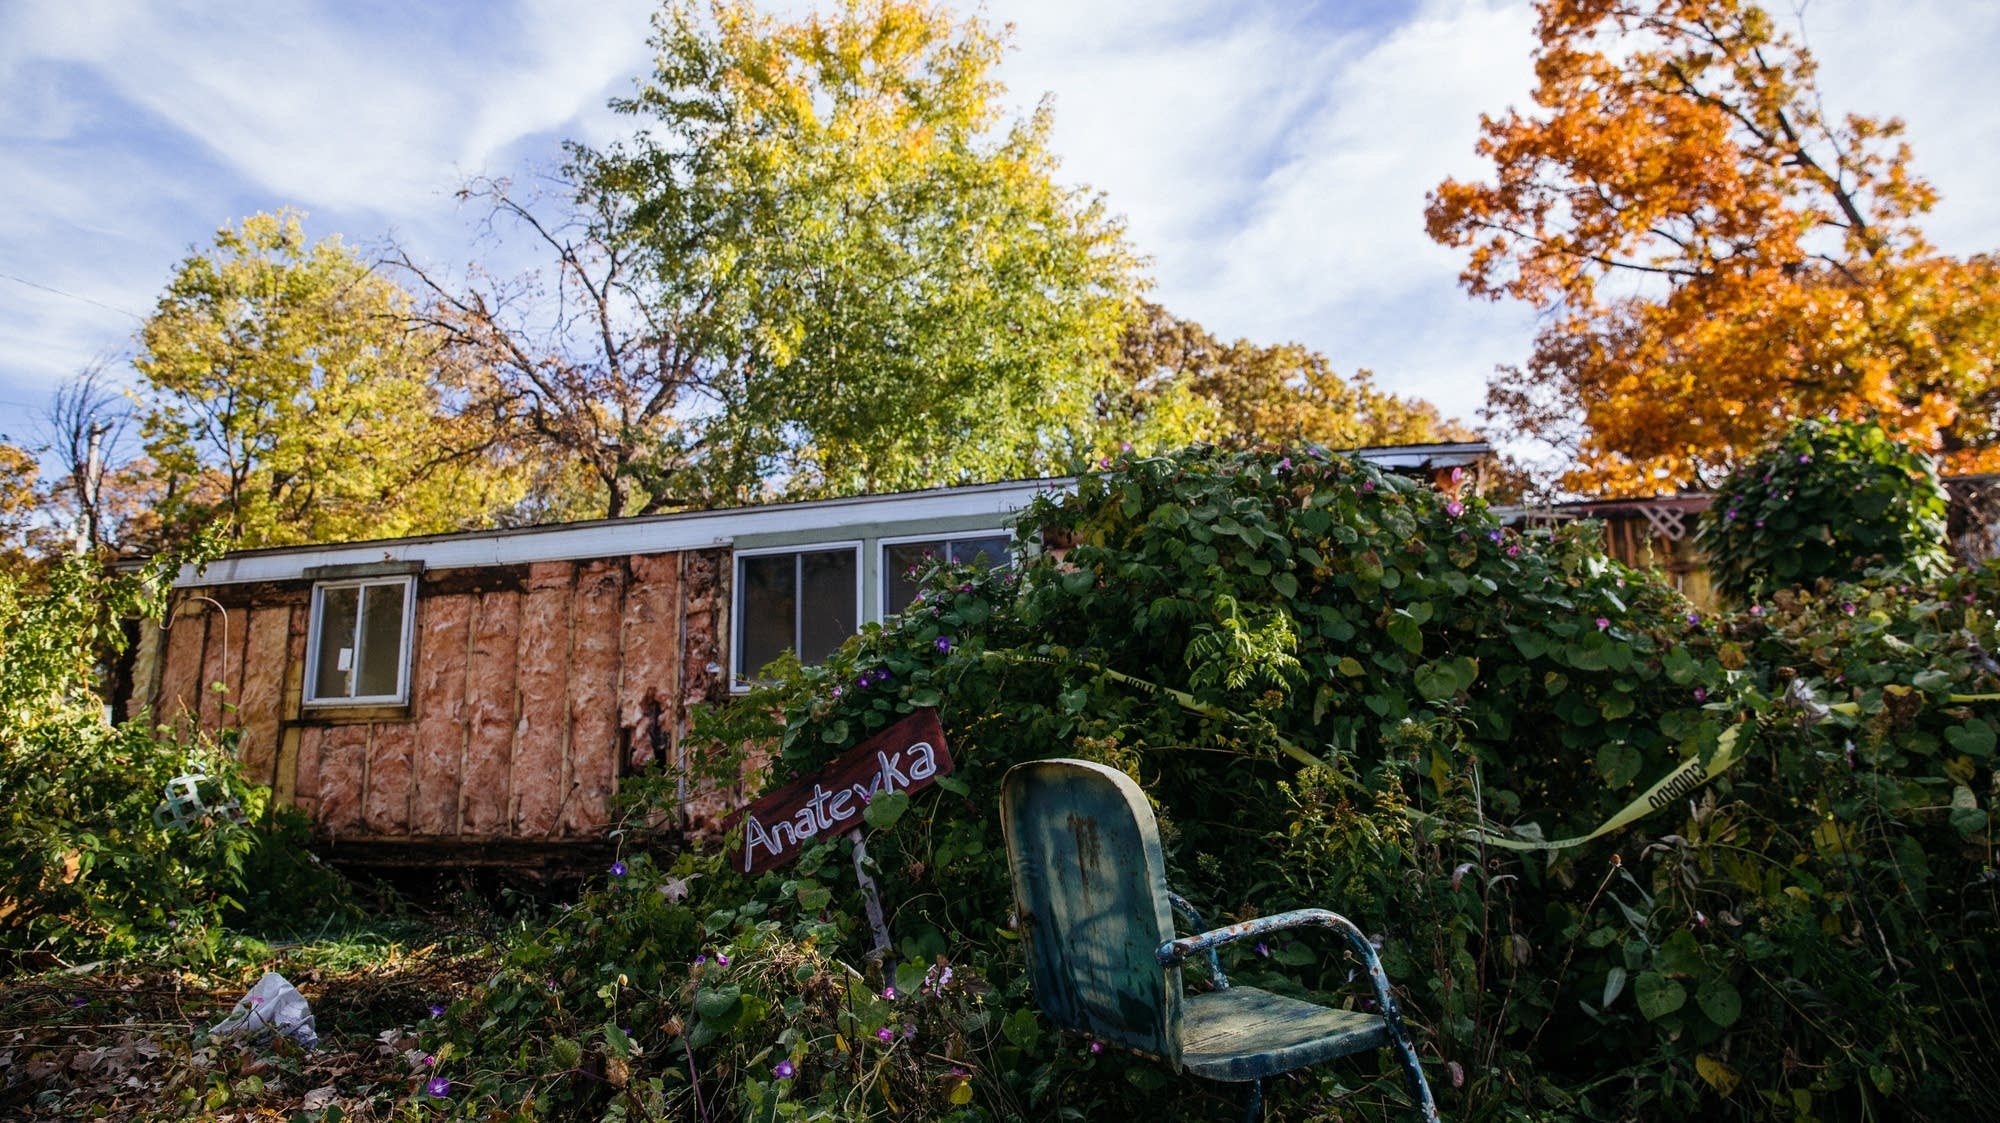 An Abandoned Trailer In Lowry Grove